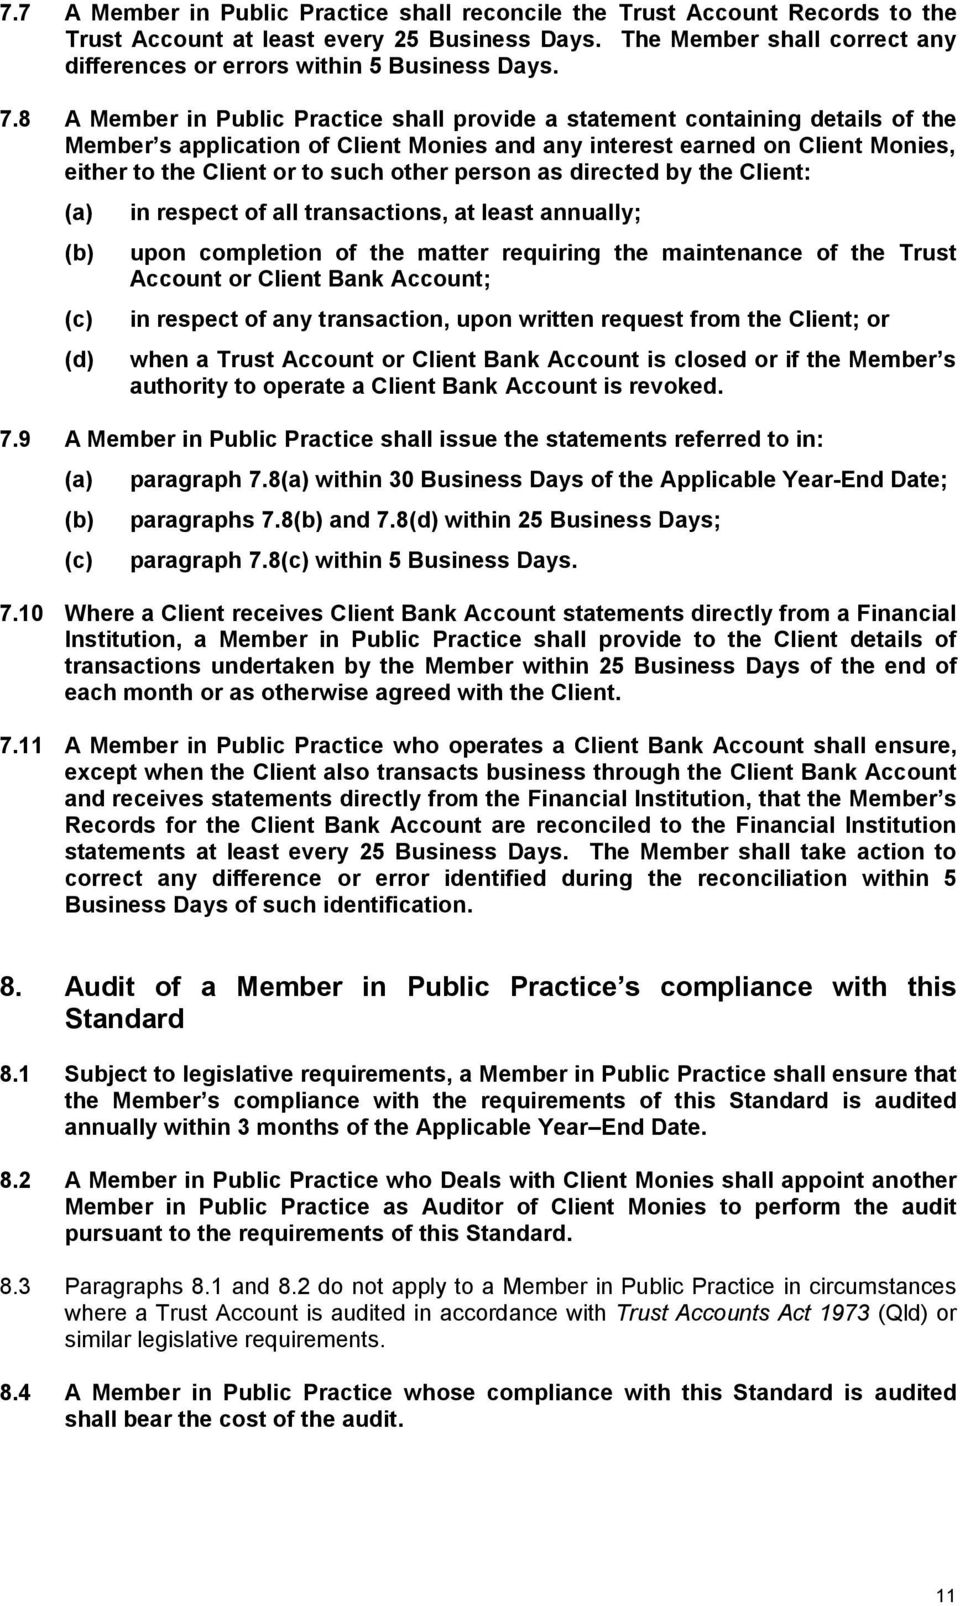 8 A Member in Public Practice shall provide a statement containing details of the Member s application of Client Monies and any interest earned on Client Monies, either to the Client or to such other